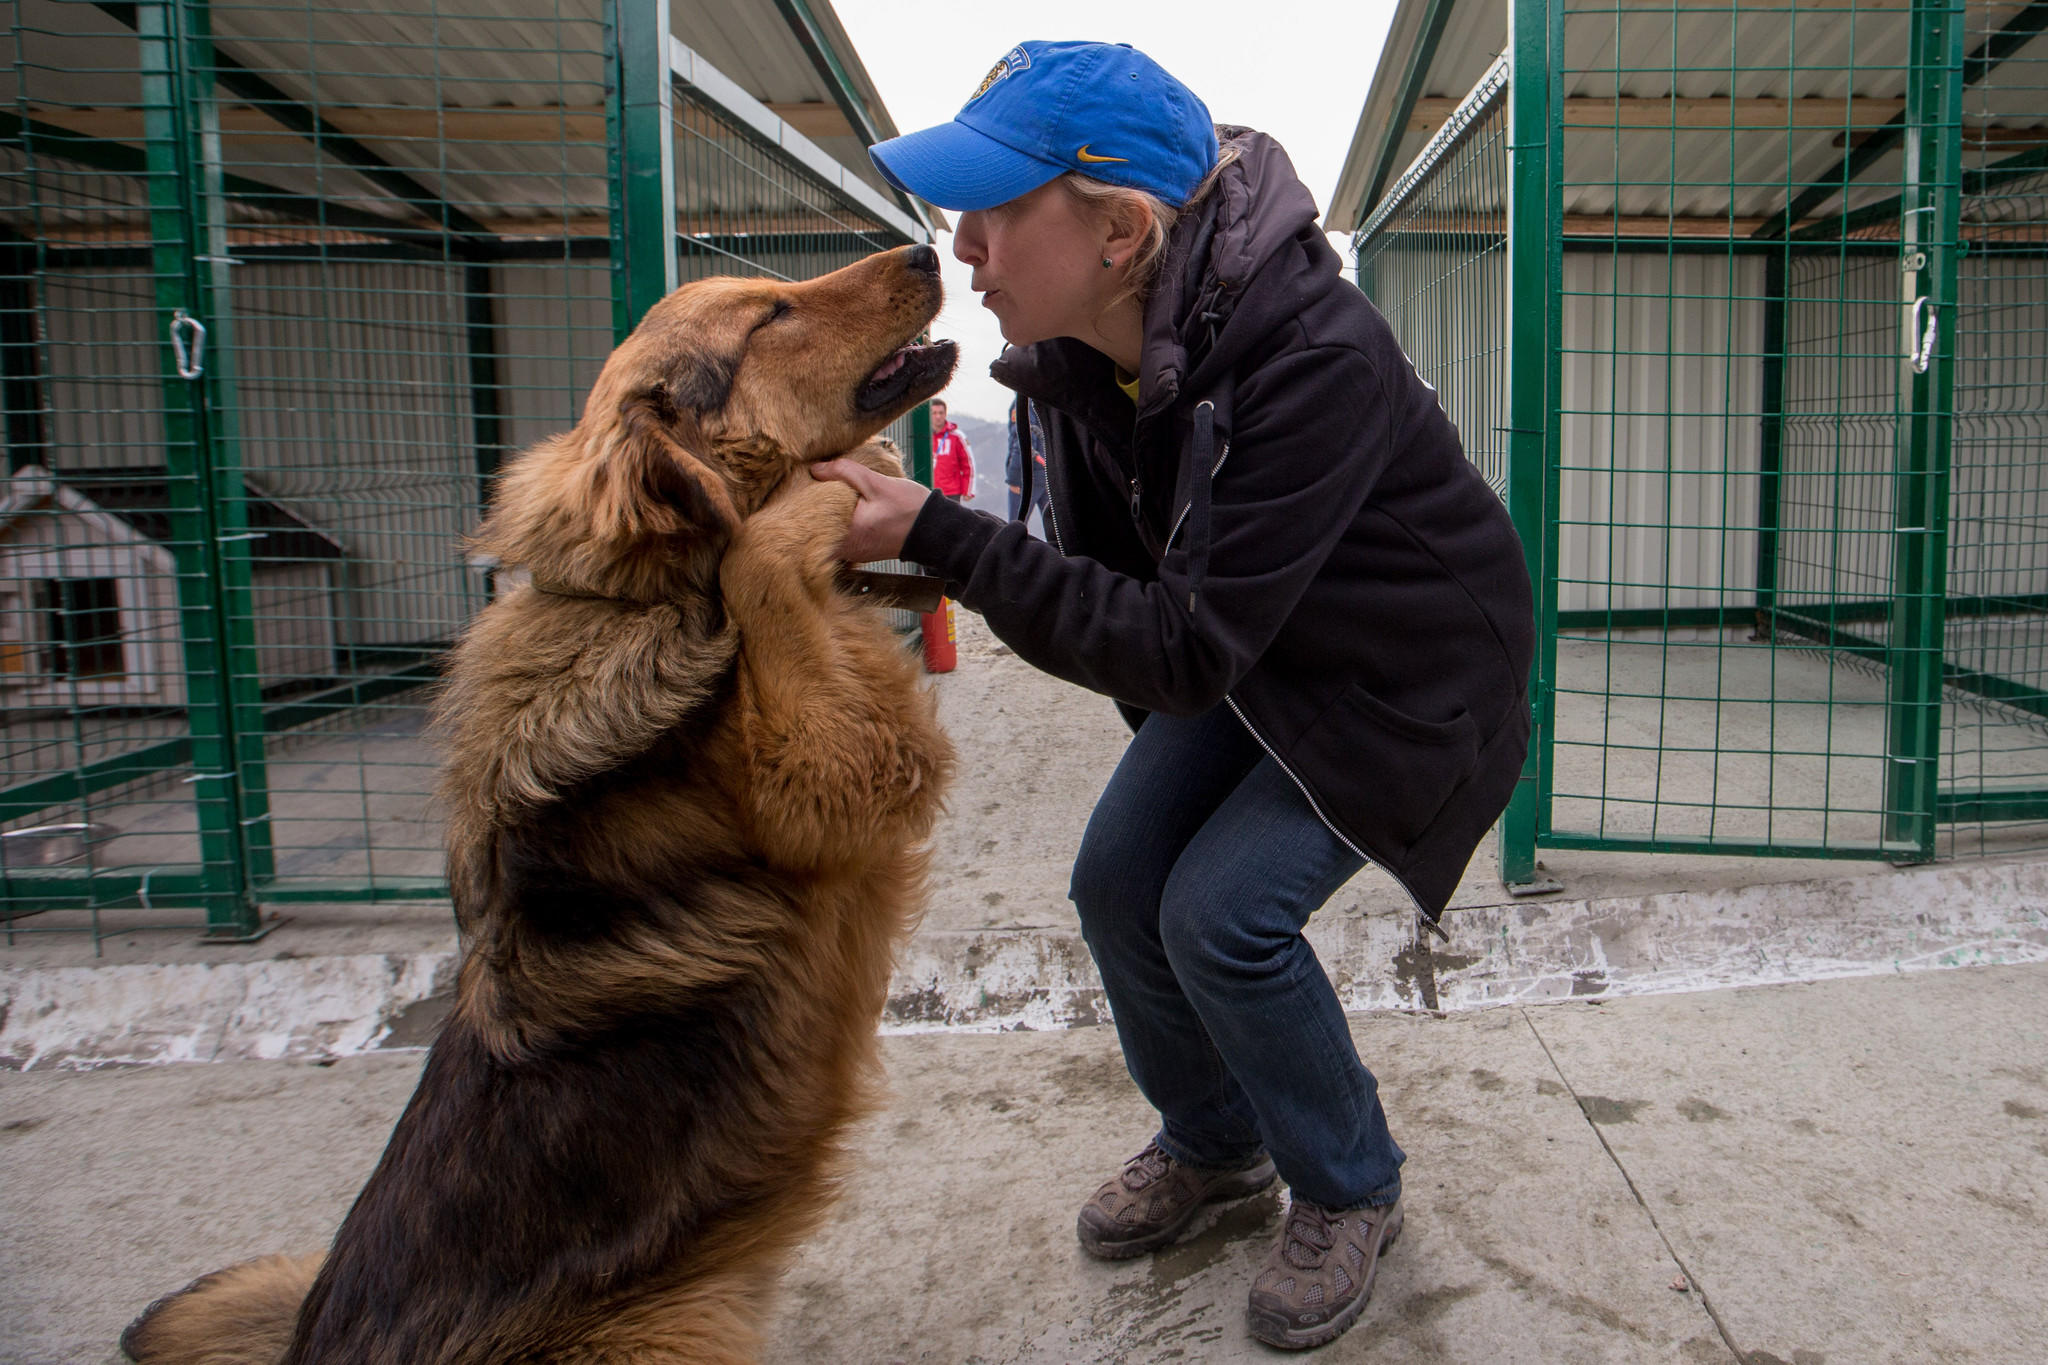 Nadezhda Mayboroda who heads PovoDog dog shelter, plays with one of the rescued dogs during the Sochi 2014 Olympic Winter Games. Construction of a new facility, which was recently finished, will allow the shelter (which currently has about 100 dogs) to house up to 250 dogs.